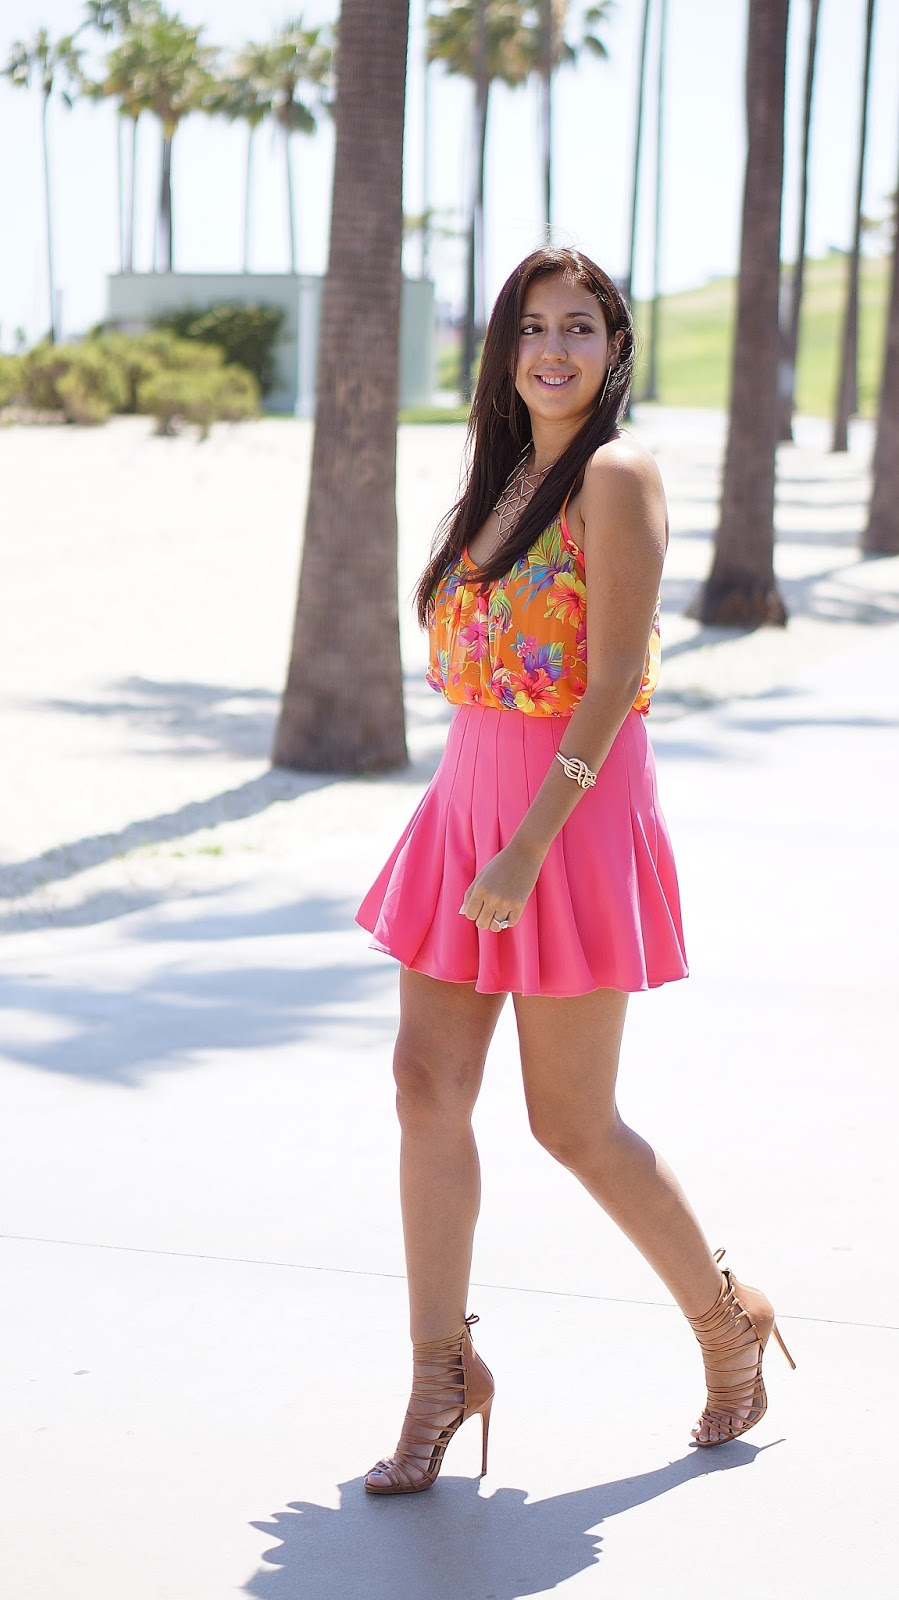 H&M Pleated Skirt, Shoemint Heels, Hawaiian Print Top, Summer Fashion